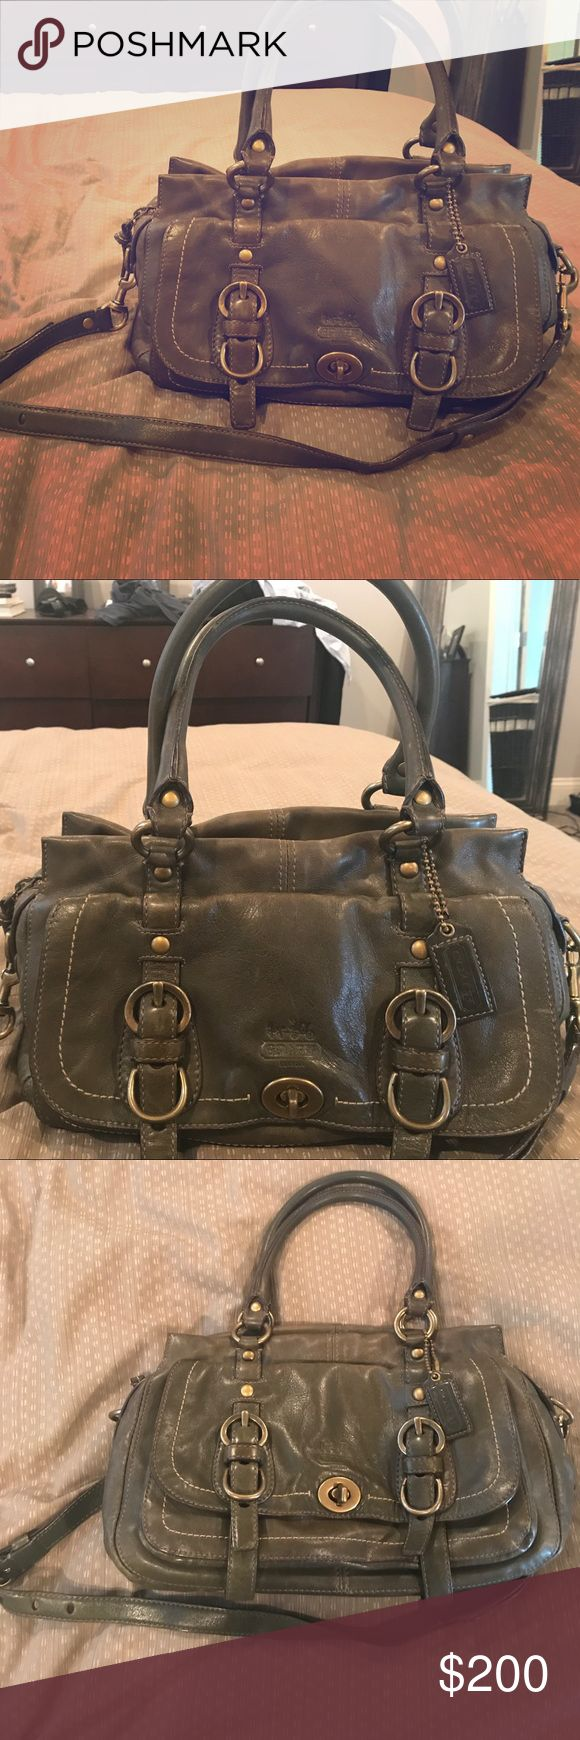 Rare Coach Legacy Leather Zip Satchel Gently pre-owned Rare Coach Legacy Leather Satchel - retails for $698 in bottle green with antique brass hardware. Stripe silk lining on inside. Gently used - with normal wear and tear, still in excellent condition. Slight soil smudges on inside lining and slight fading on bottom corner. Otherwise looks great. Coach Bags Satchels